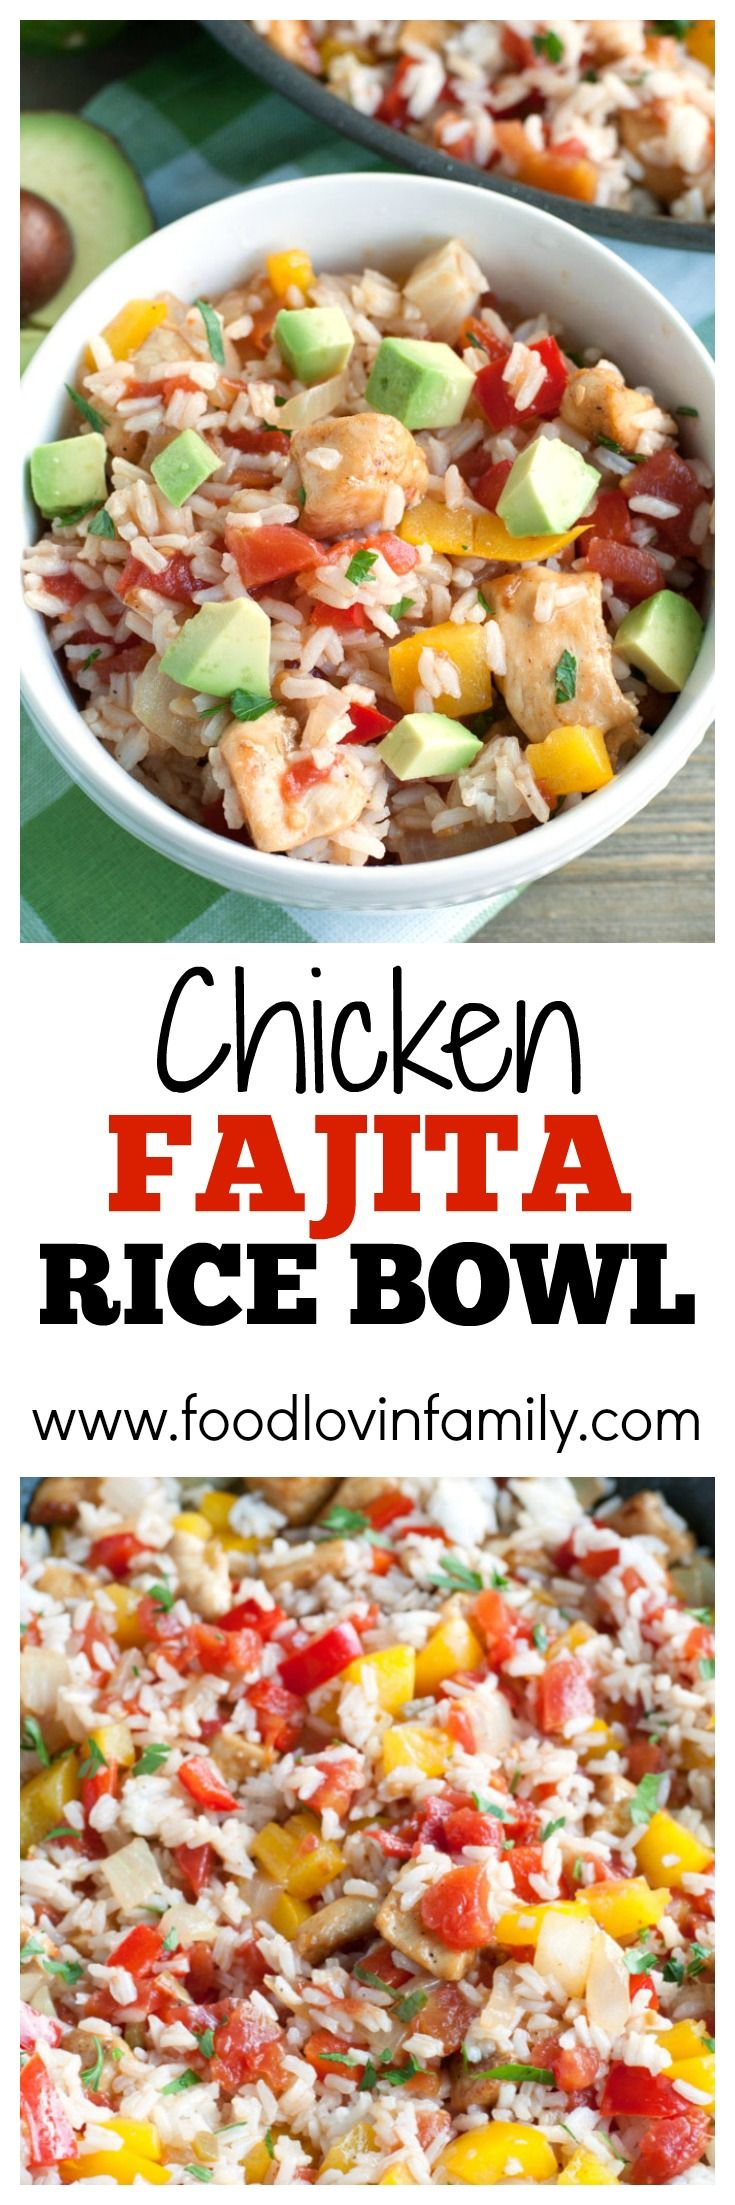 Chicken Fajita Rice Bowl - fajita seasoned chicken mixed with peppers, onions, RO*TEL and cilantro lime rice. A bold and flavorful meal the family will love. #ad #31DaysWithRotel @ro_tel @walmart @RO*TEL @ro_tel #Rotel @roteltomatoes